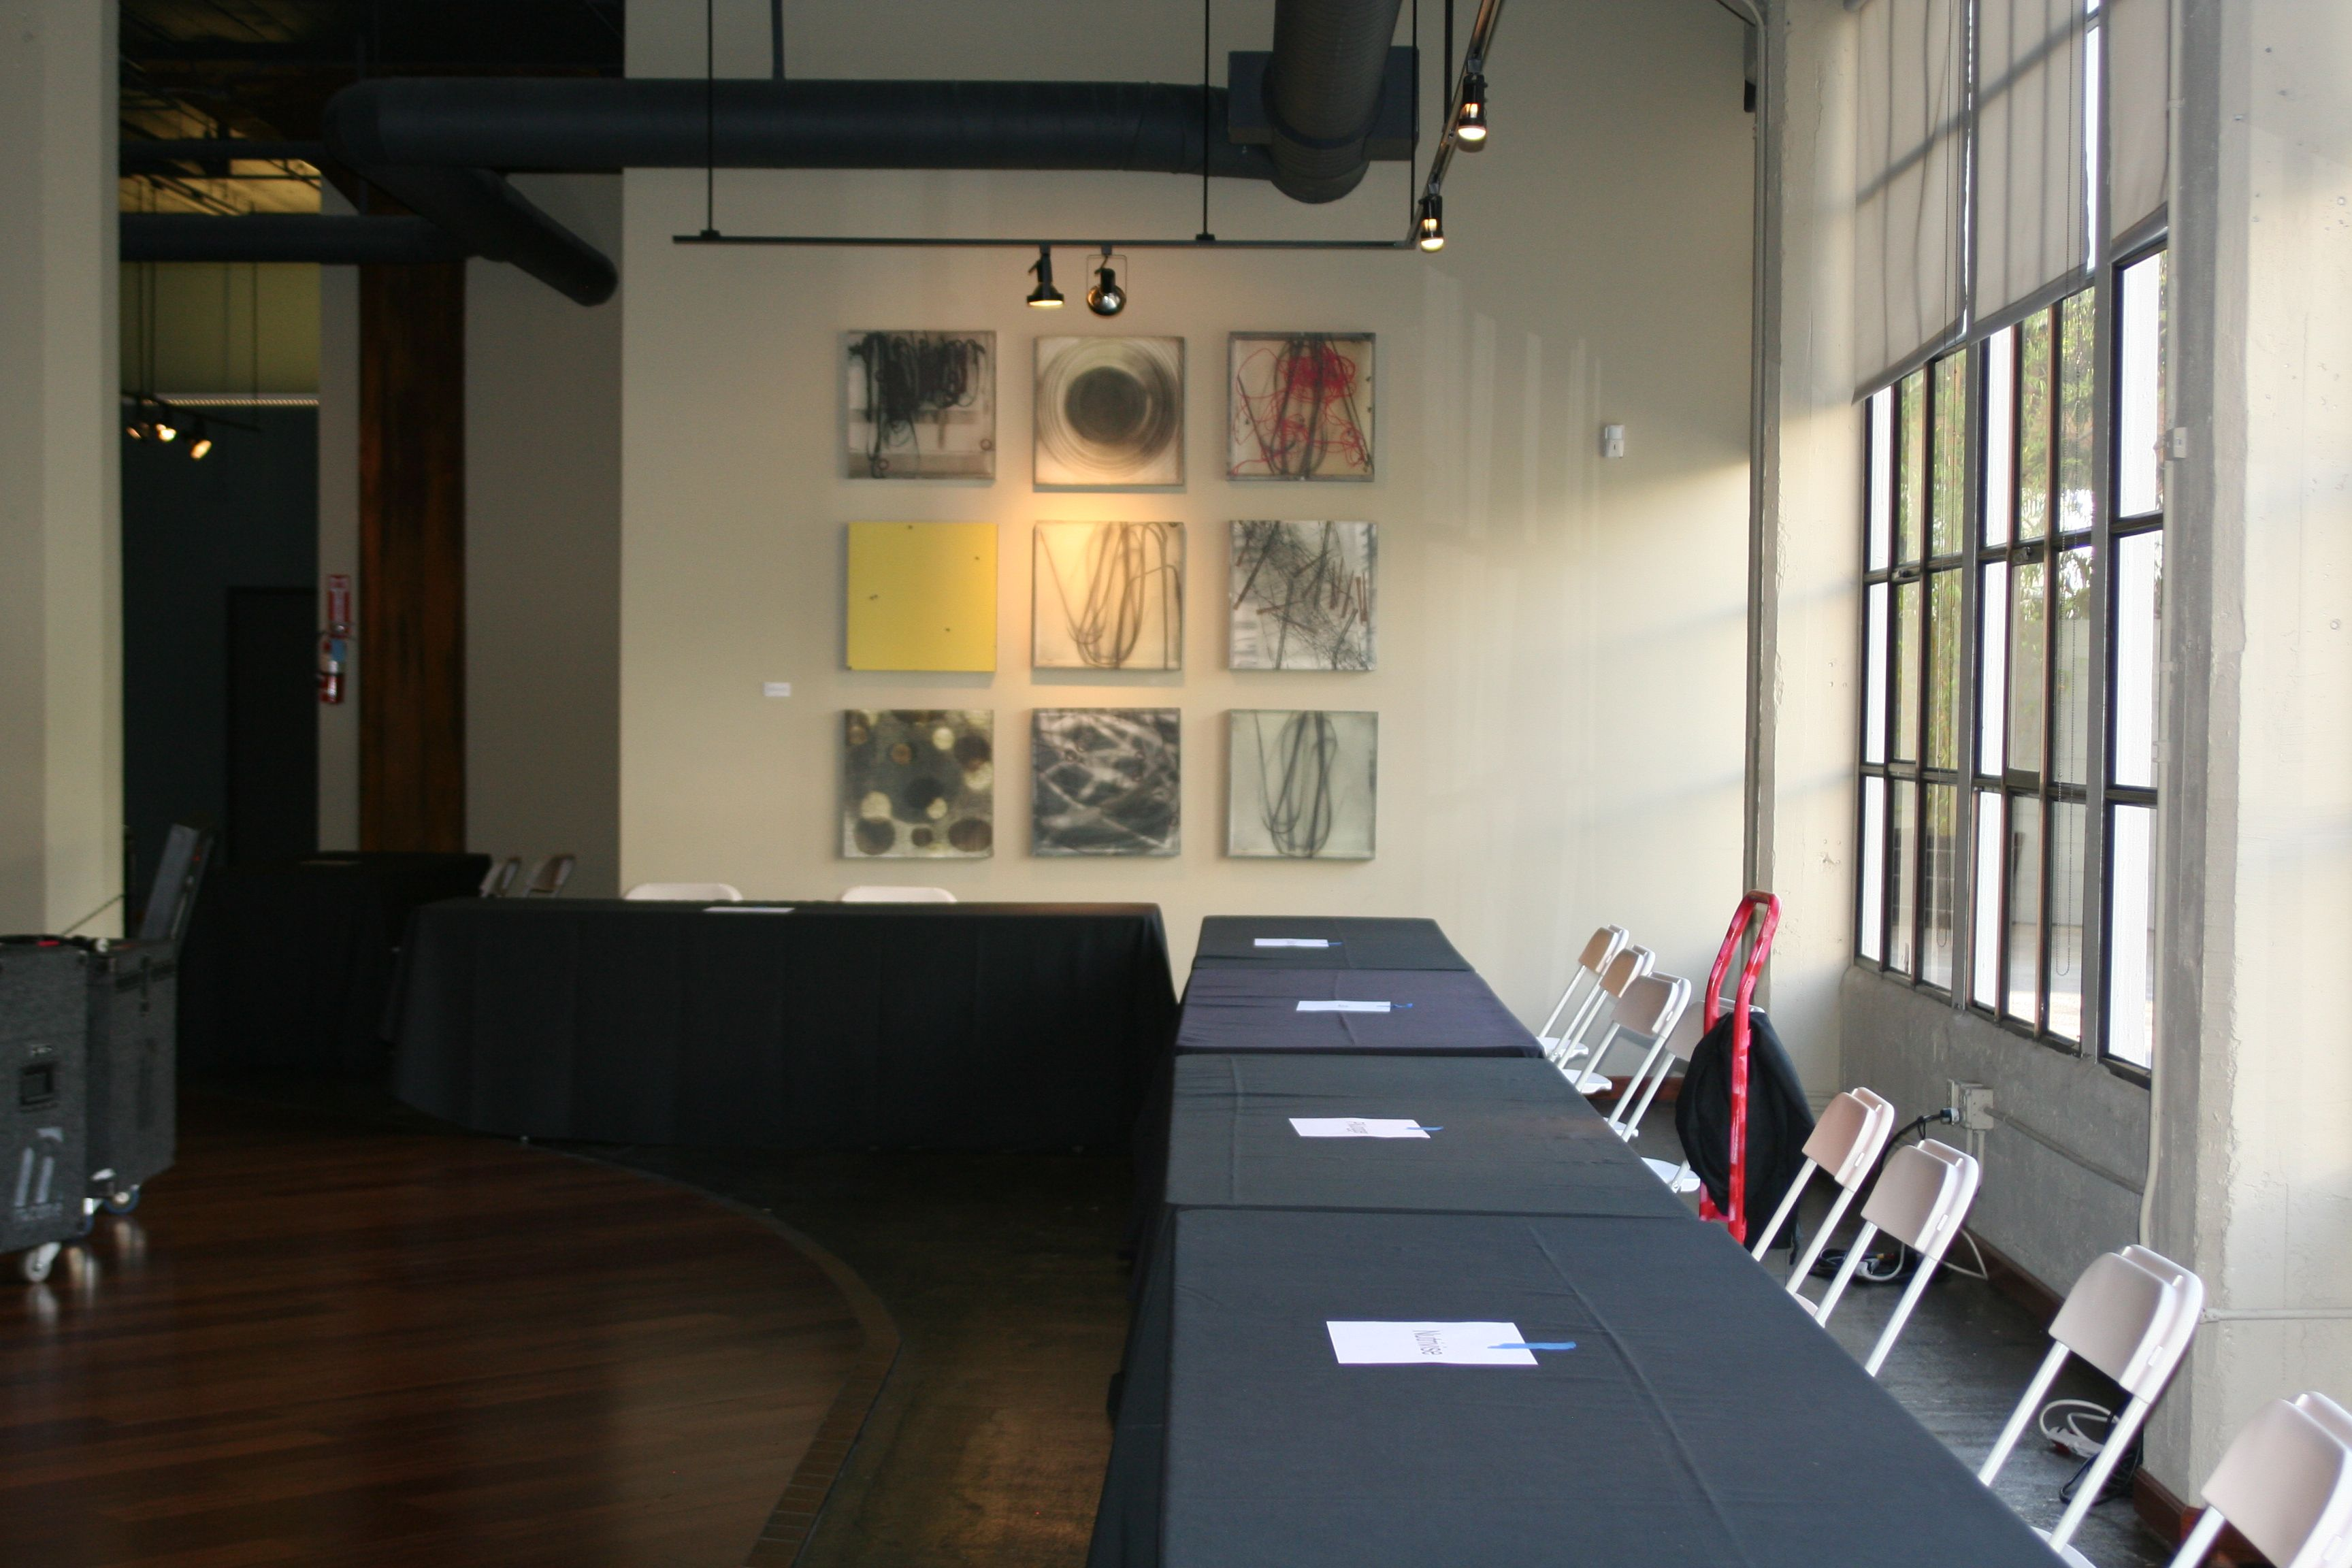 Terra Gallery is ready for exhibitors to arrive. Photo by Cheryl Greene.